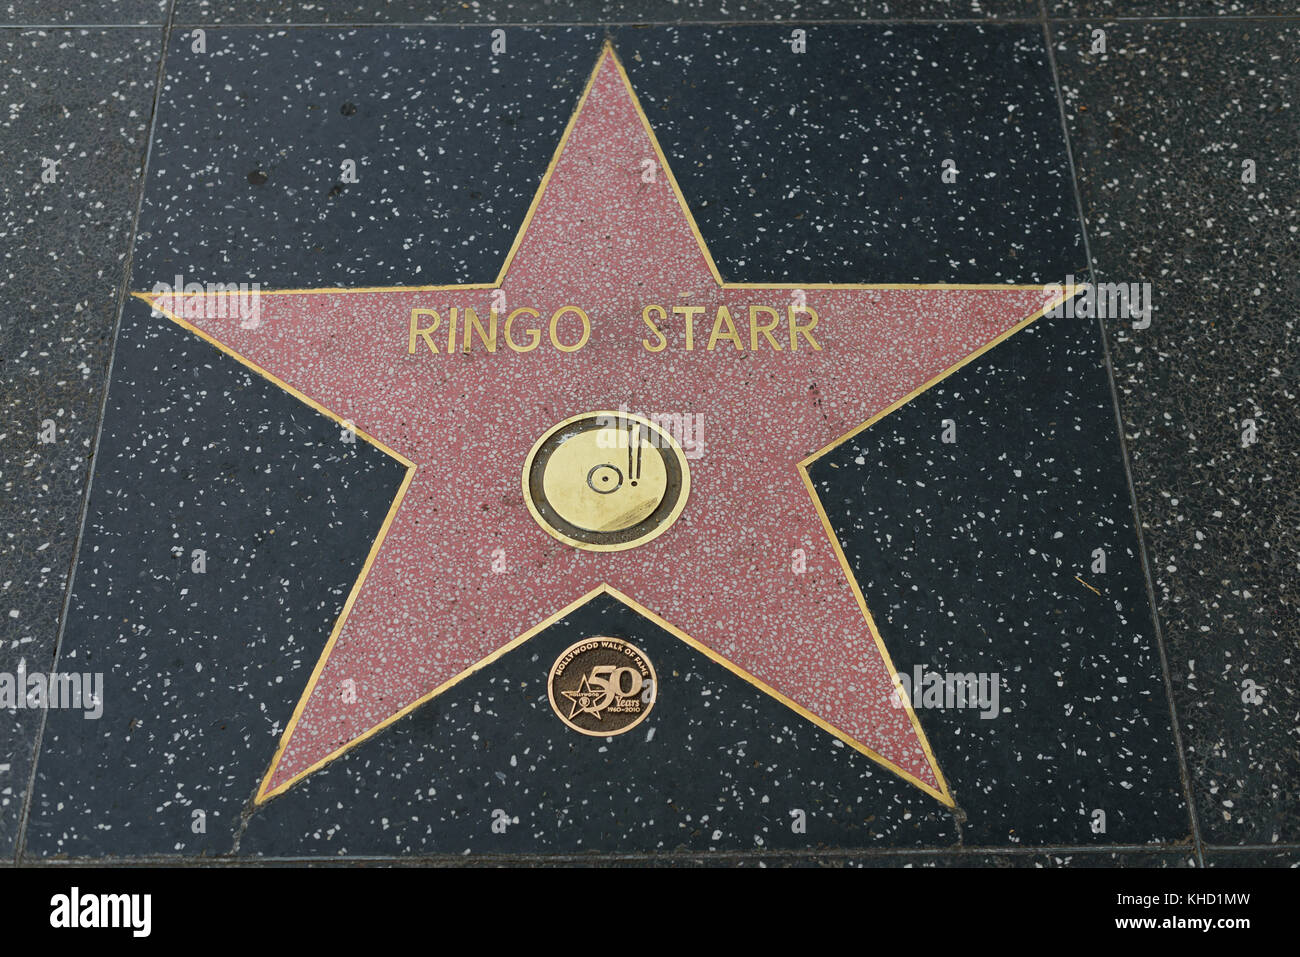 HOLLYWOOD, CA - DECEMBER 06: Ringo Starr star on the Hollywood Walk of Fame in Hollywood, California on Dec. 6, - Stock Image